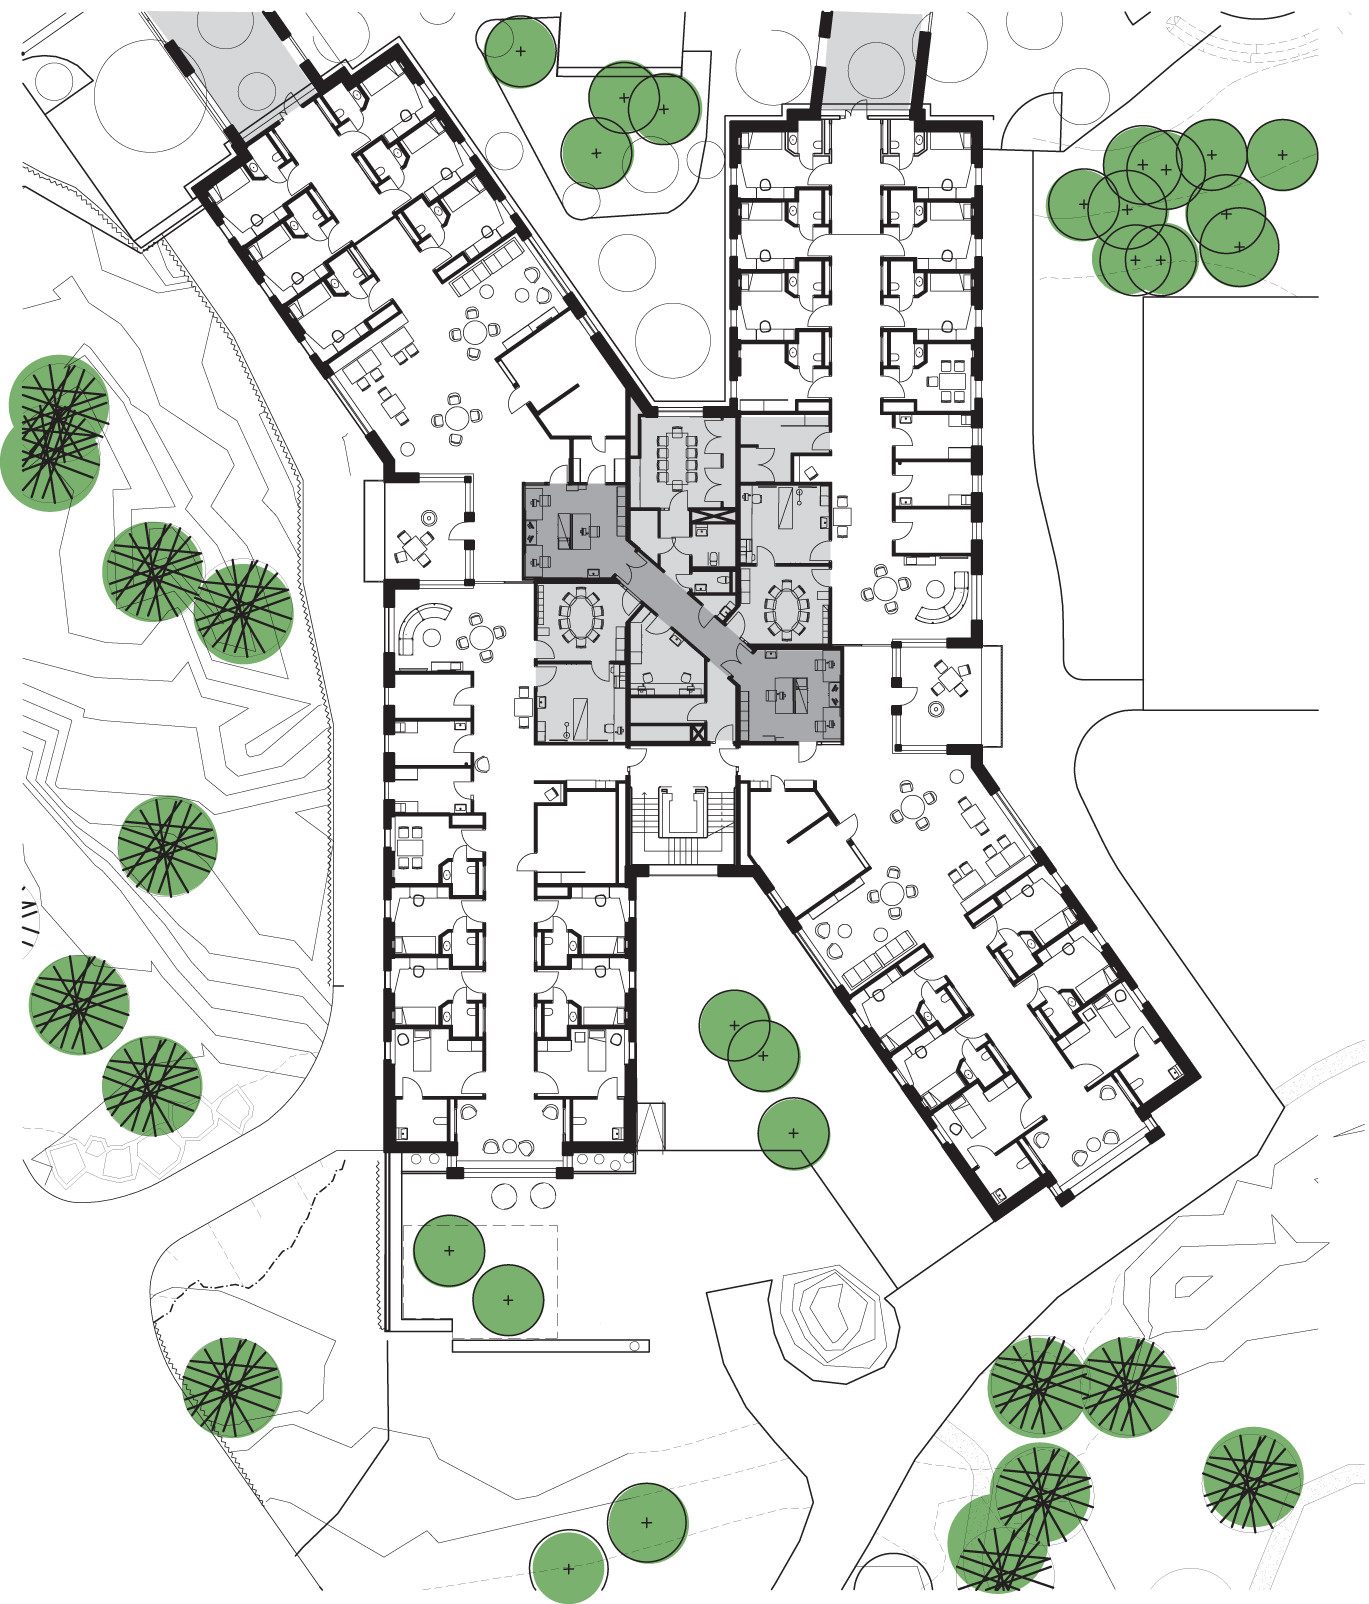 Maternity Hospital Floor Plan: Psych Wards Blueprints Pictures To Pin On Pinterest